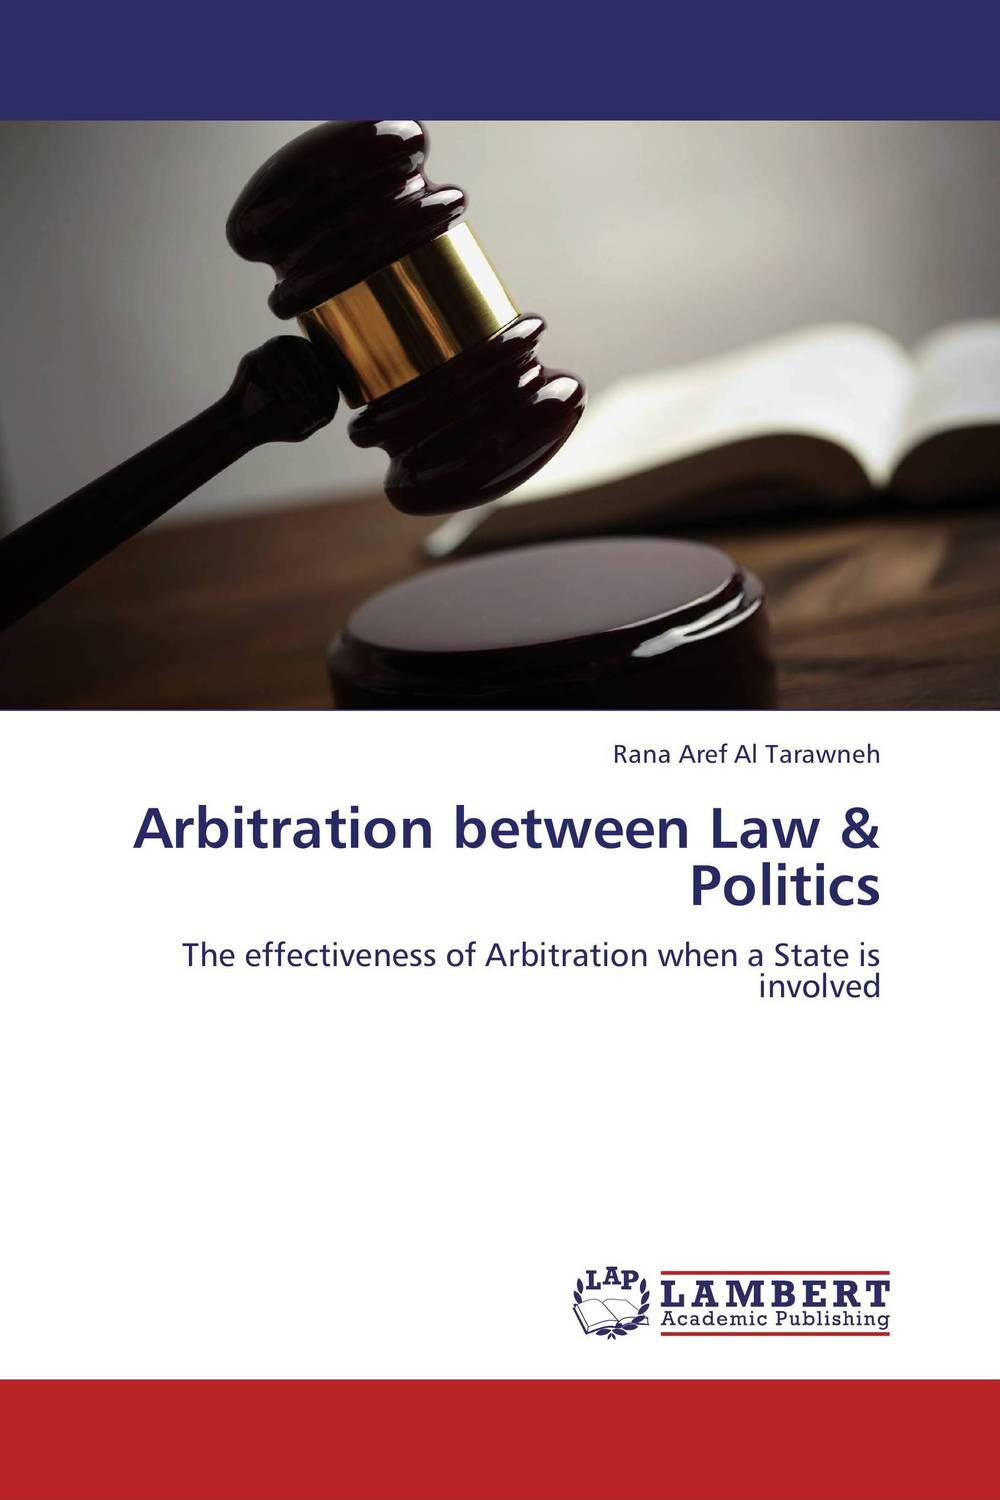 цены Arbitration between Law & Politics